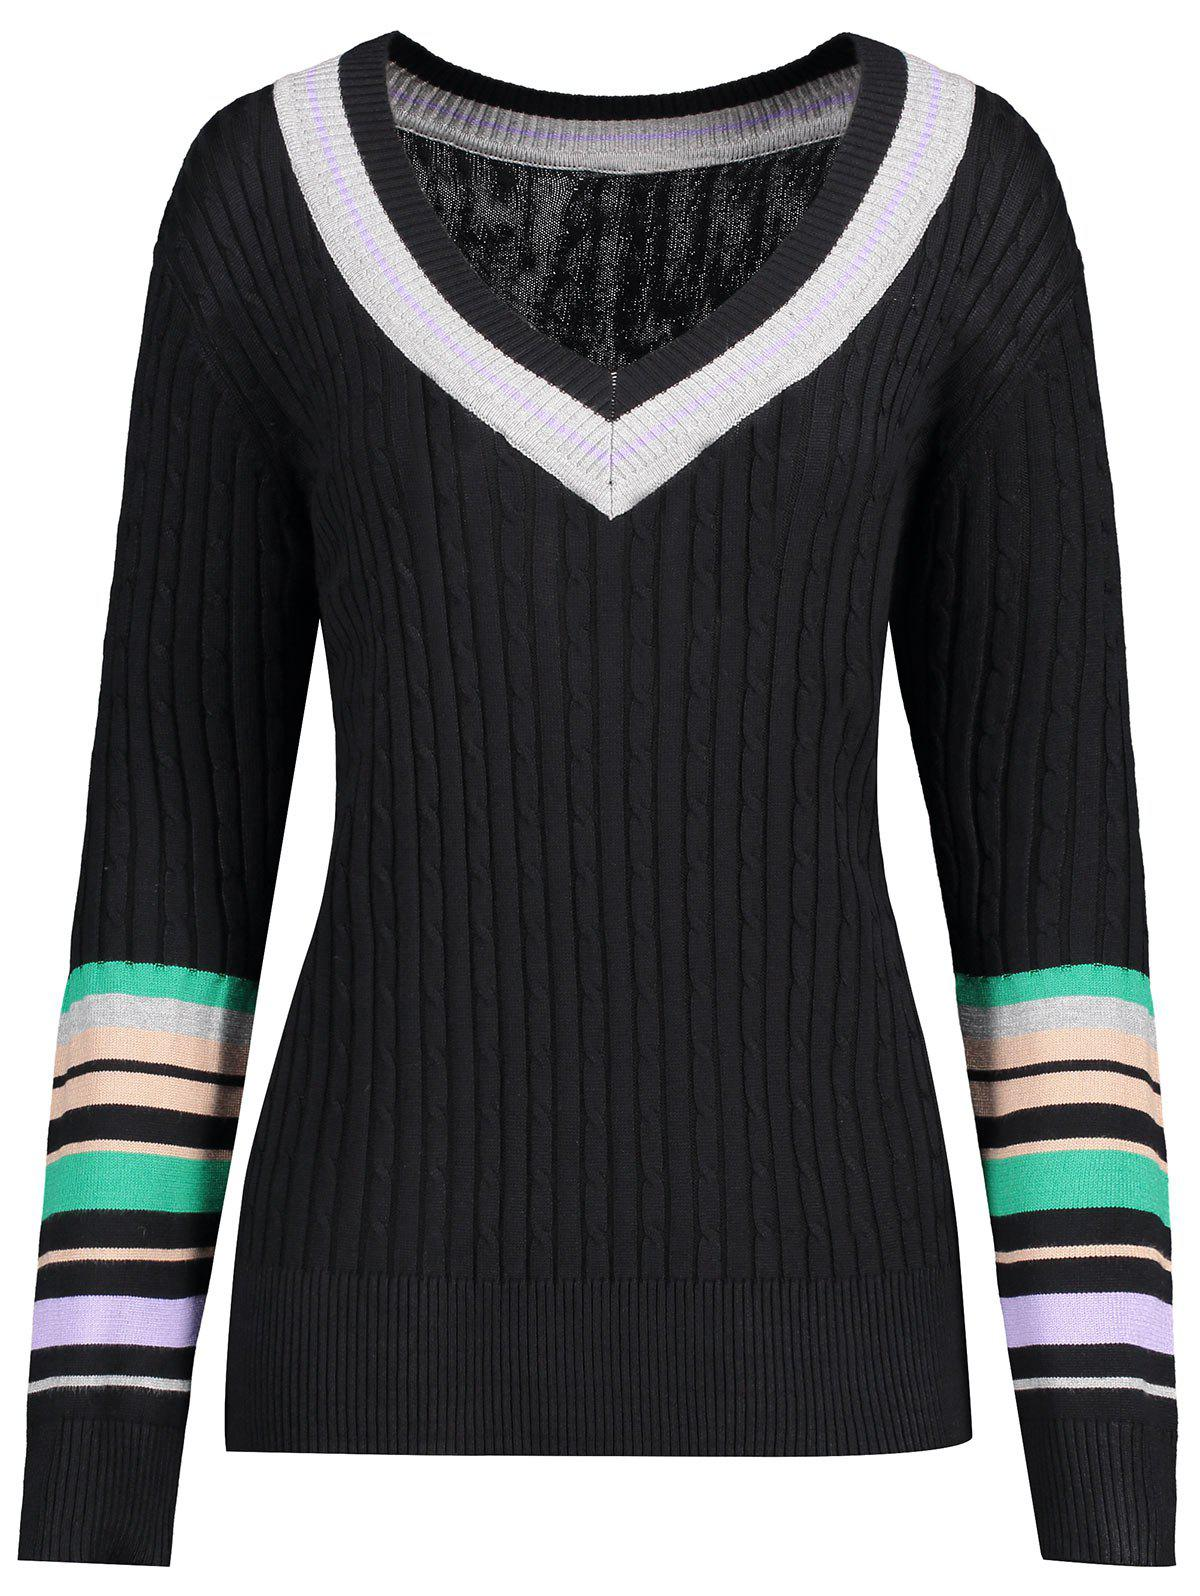 Plus Size V Neck Striped SweaterWOMEN<br><br>Size: 5XL; Color: BLACK; Type: Pullovers; Material: Acrylic; Sleeve Length: Full; Collar: V-Neck; Style: Casual; Season: Fall,Spring,Winter; Pattern Type: Striped; Weight: 0.4500kg; Package Contents: 1 x Sweater;